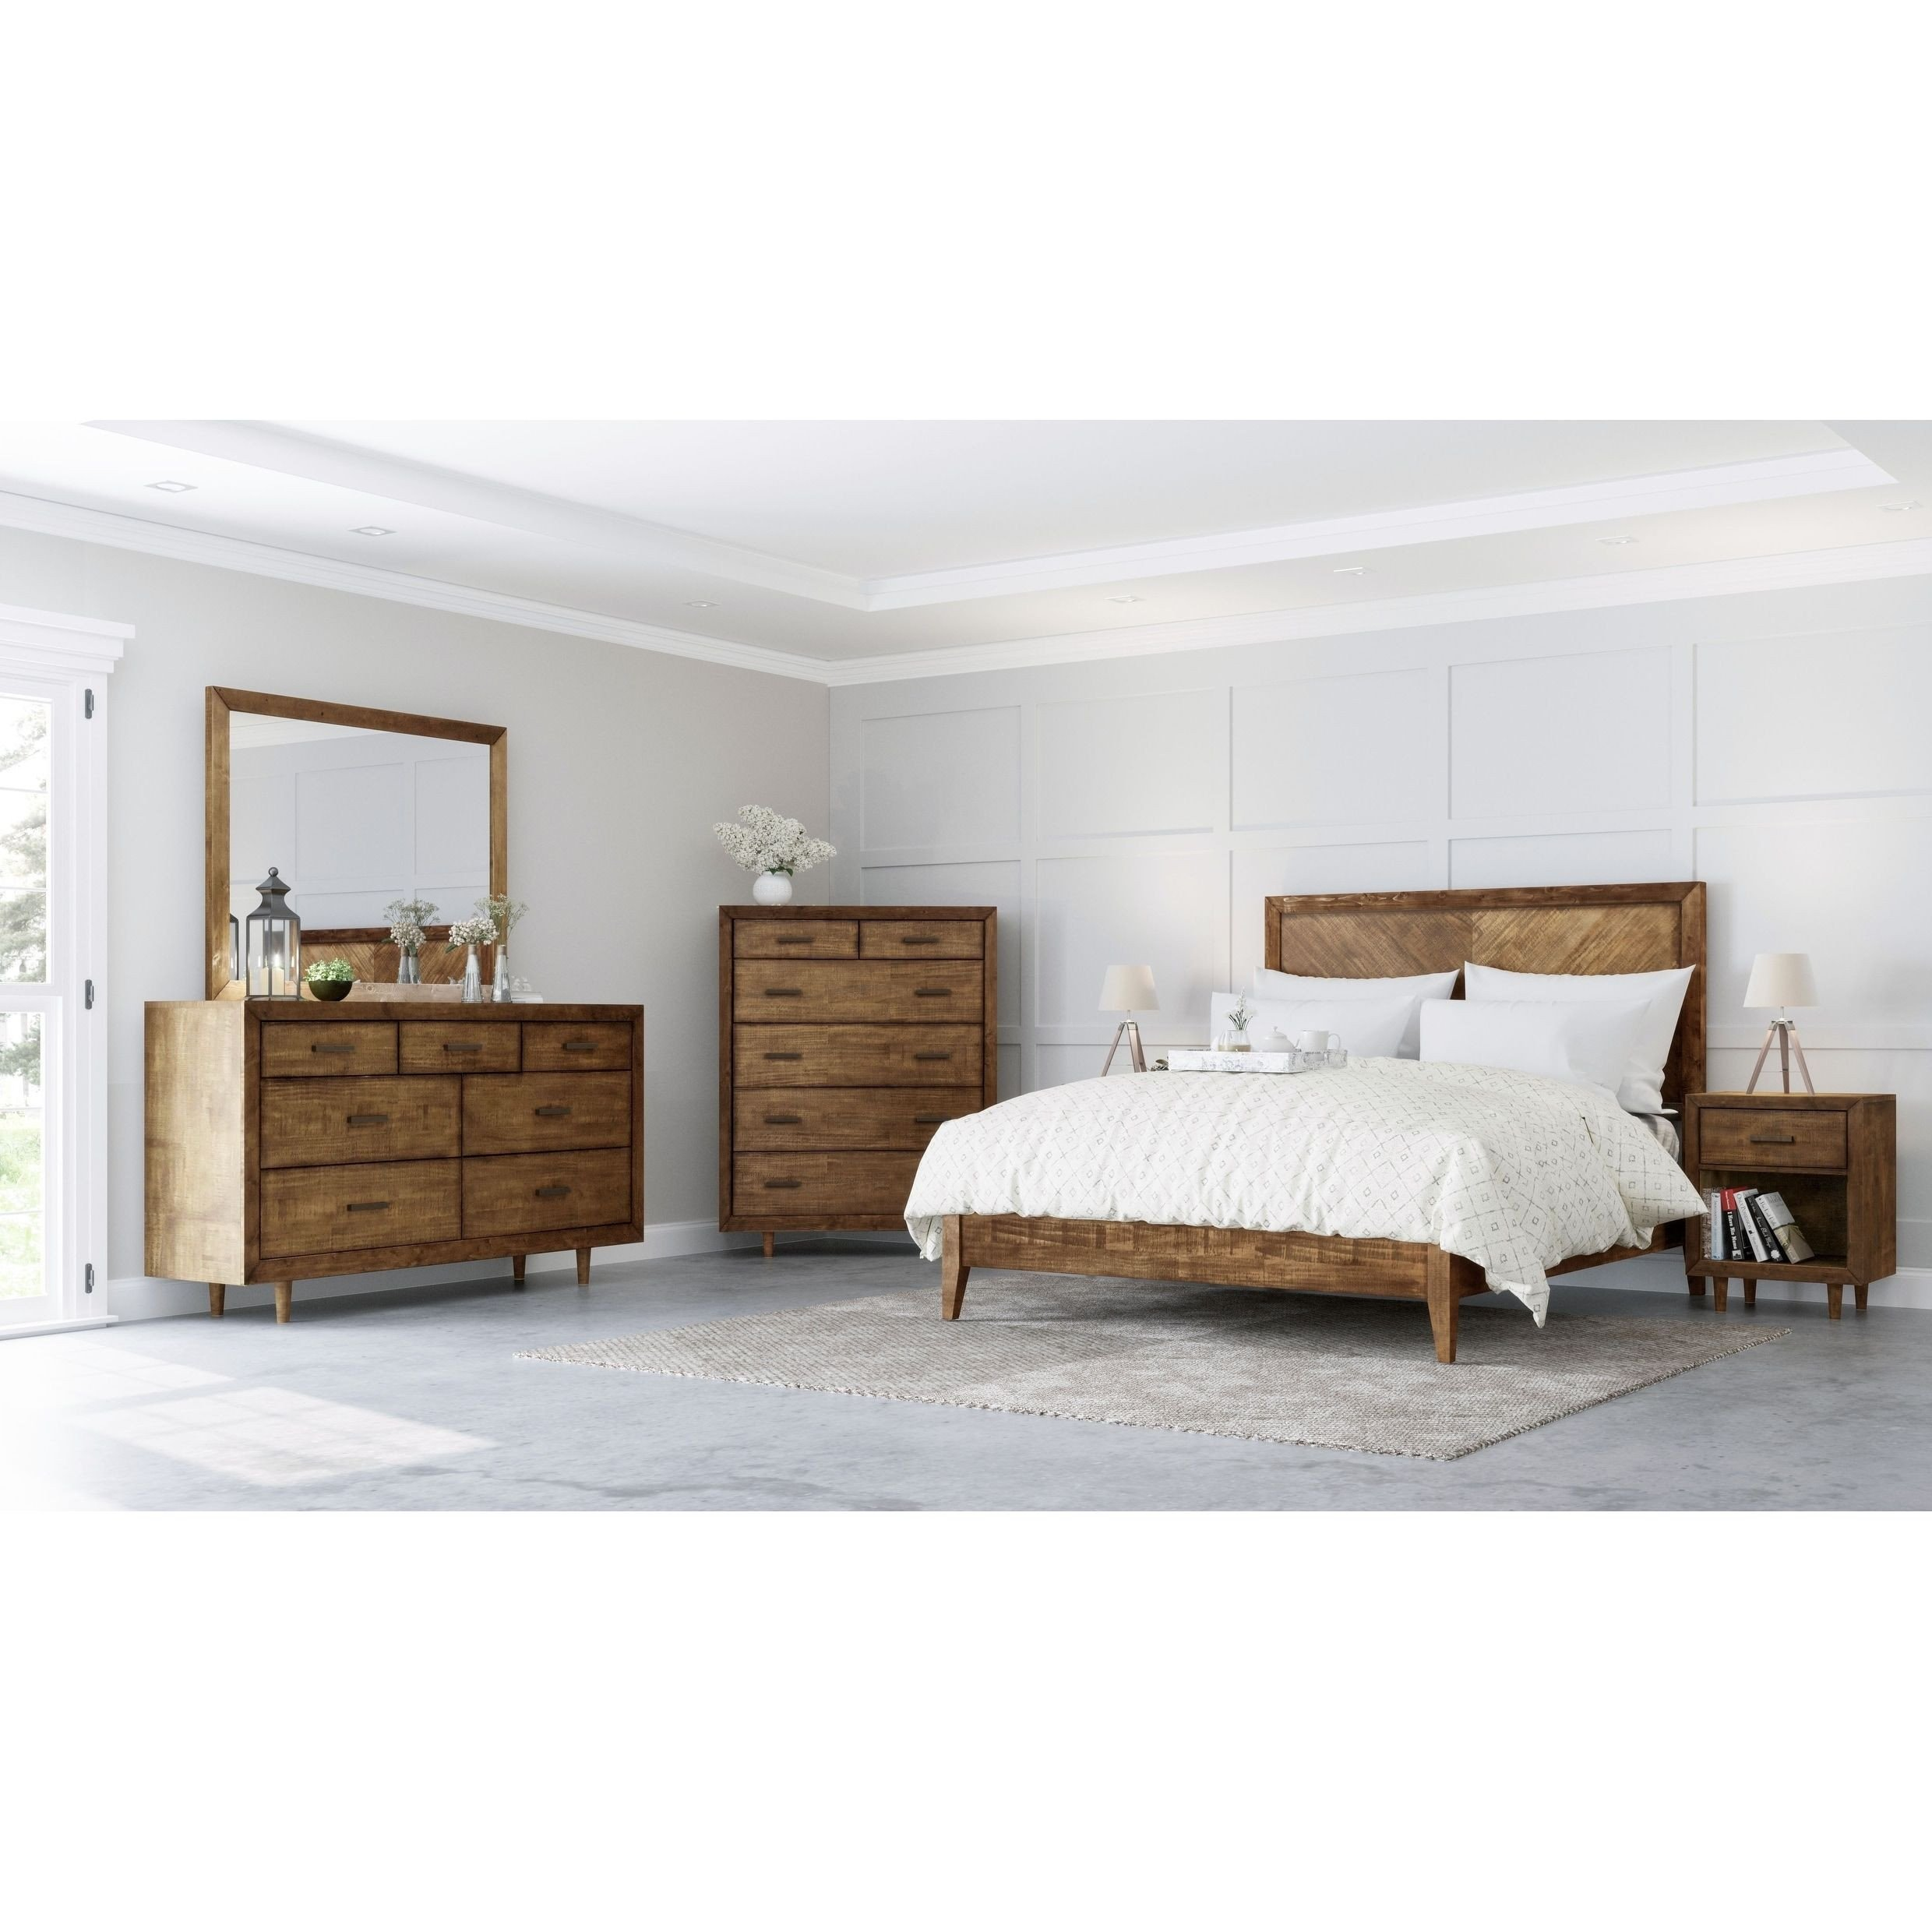 Trisha Yearwood Bedroom Furniture Beautiful Abbyson Retro Mid Century 6 Piece Bedroom Set In 2019